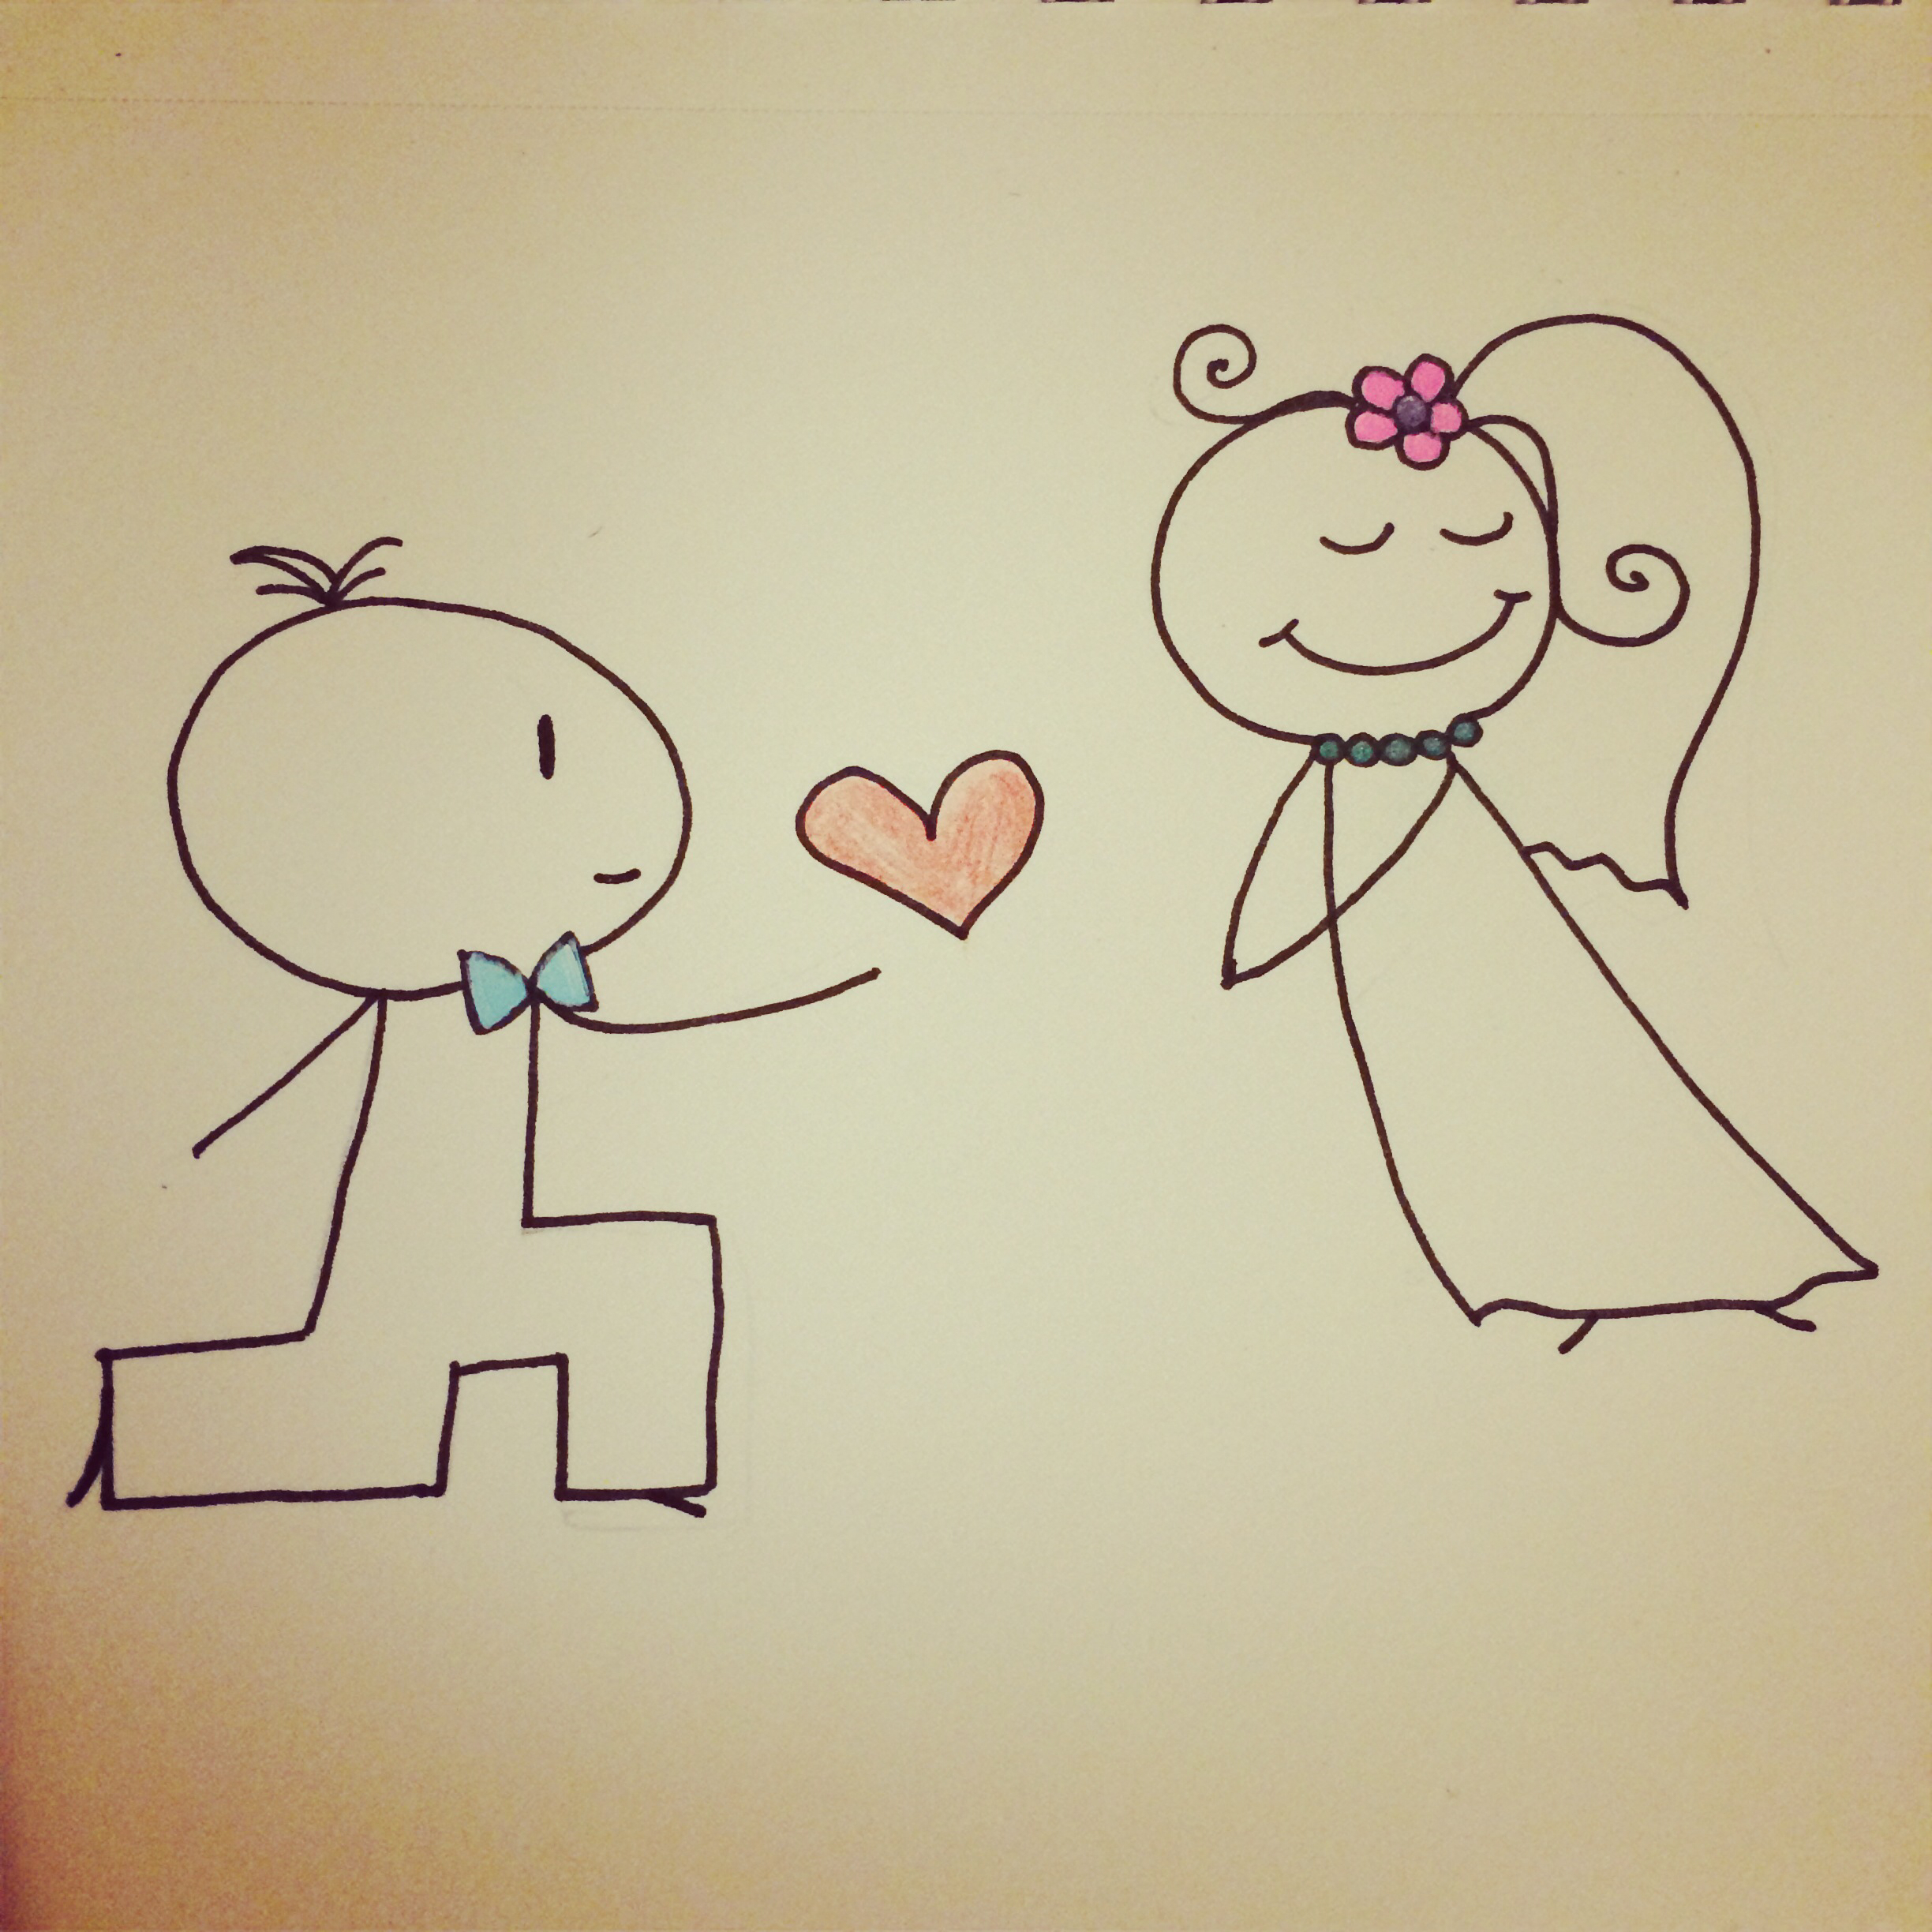 2448x2448 Cute Love Drawings For Him Cute Love Drawings